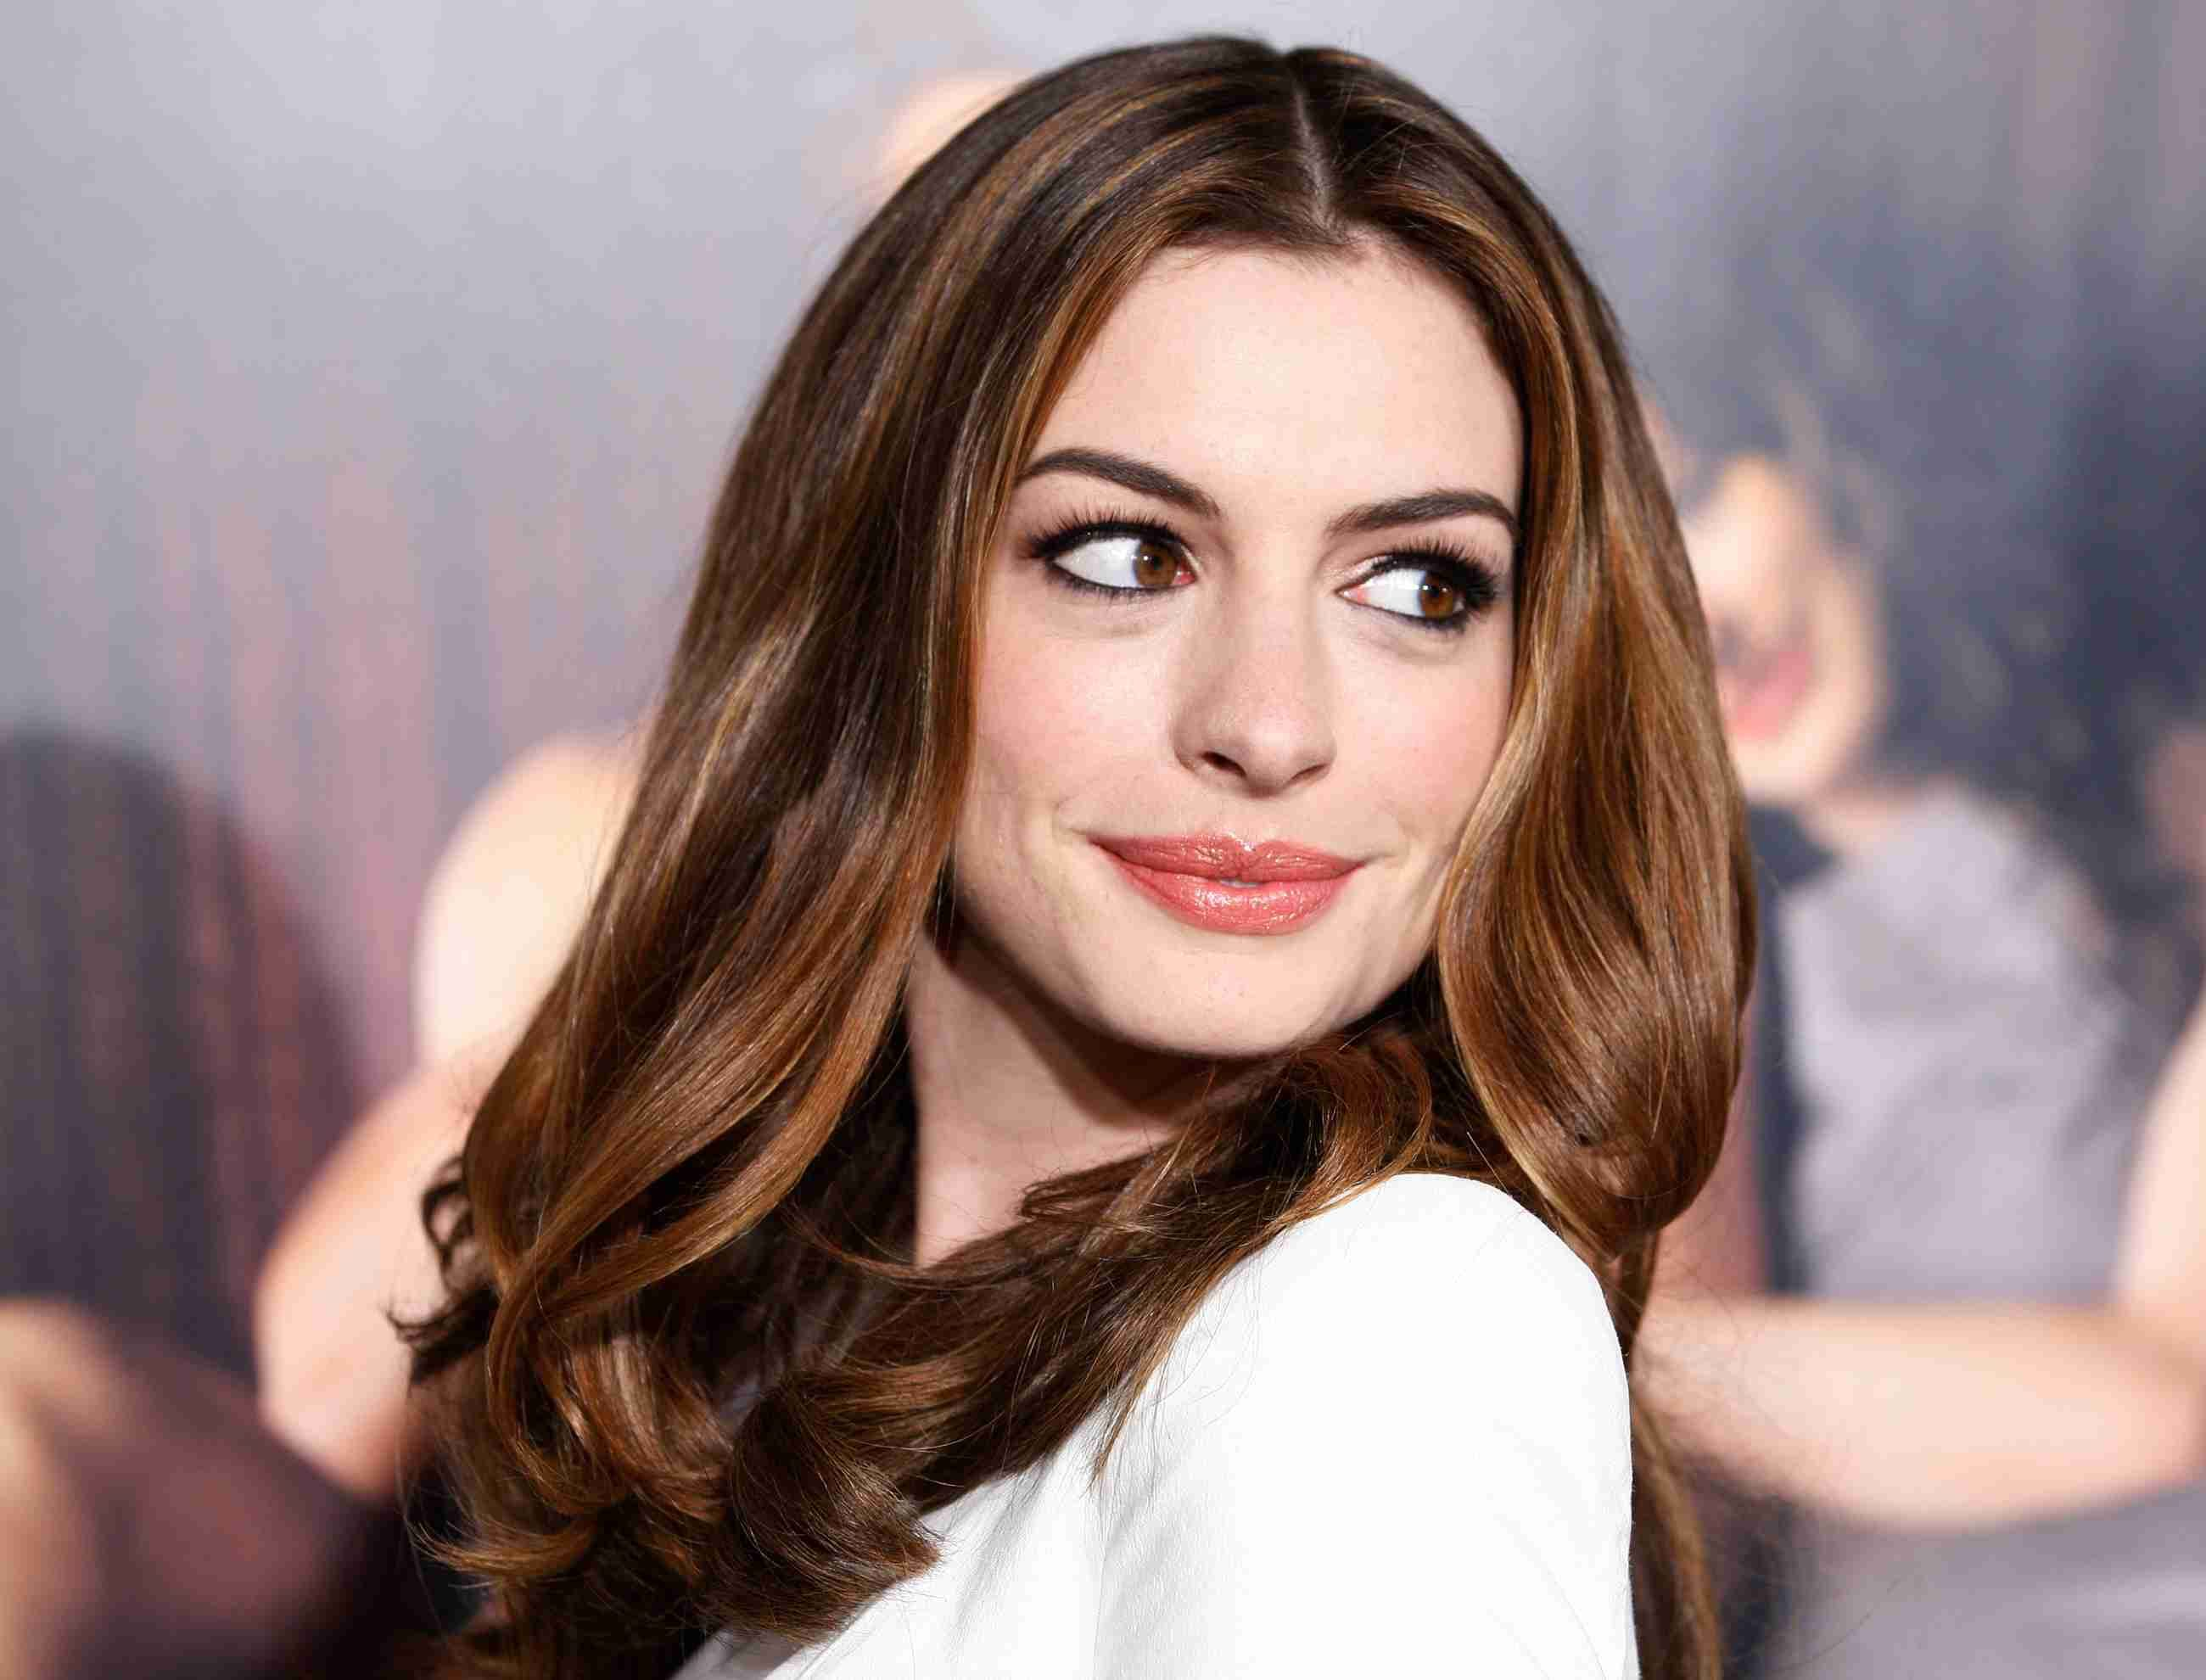 Anne Hathaway Hd Wallpaper From Gallsourcecom Celebrity